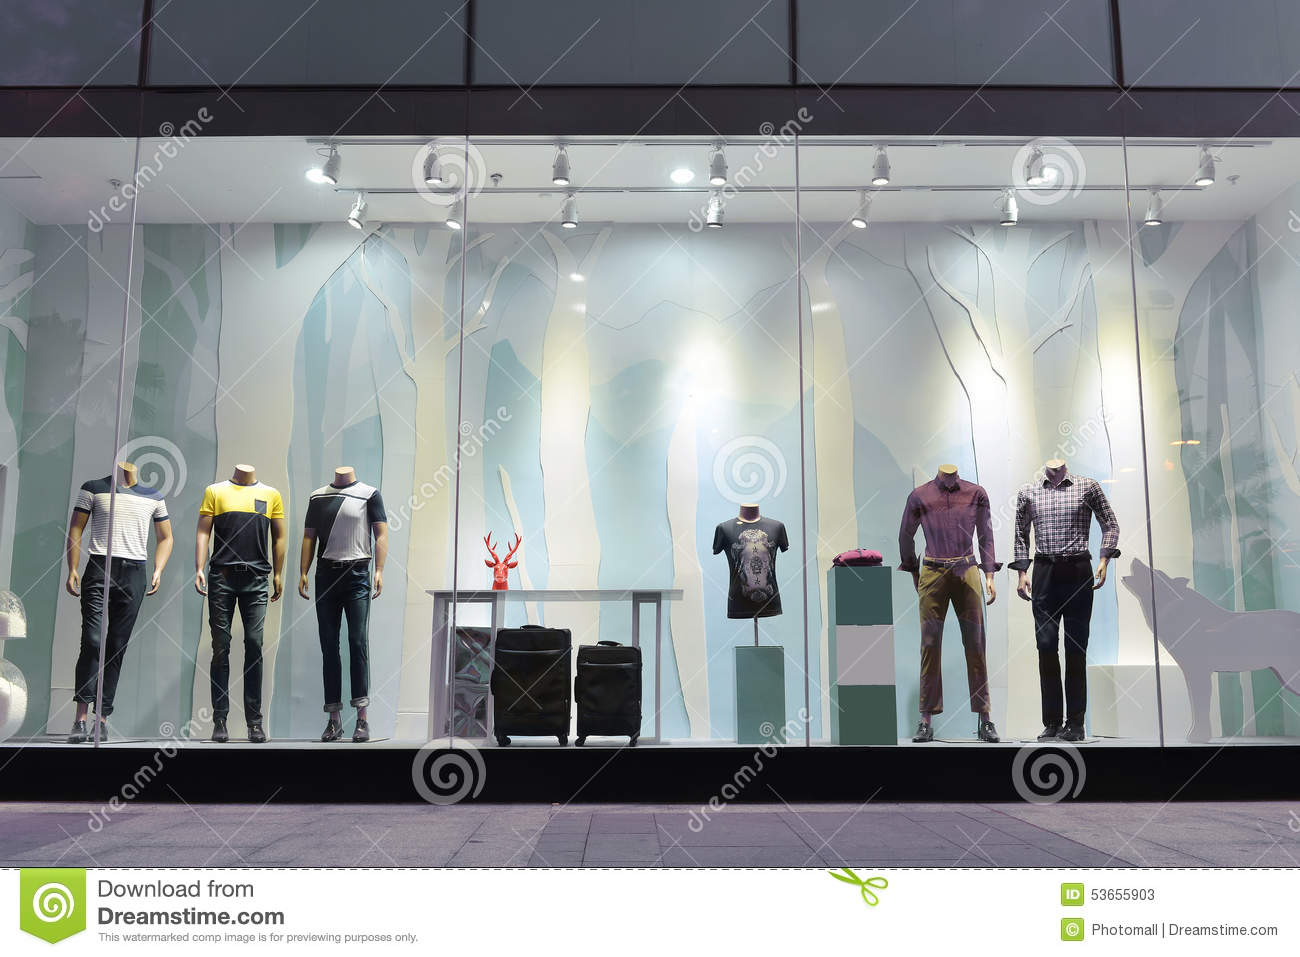 Clothing stores near grand central